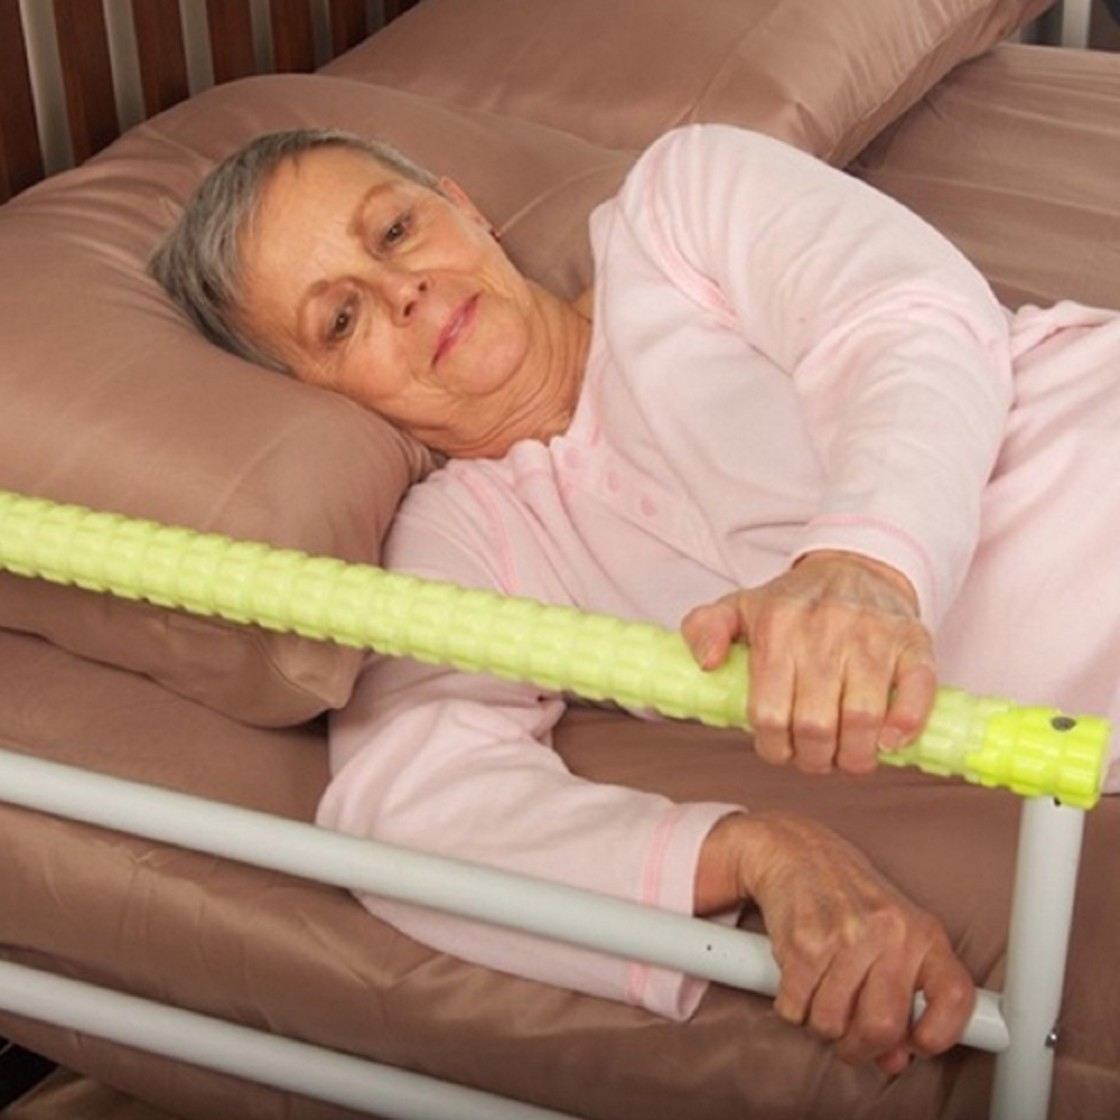 Baby bed fall prevention - Safety Glo Bedside Hand Rail